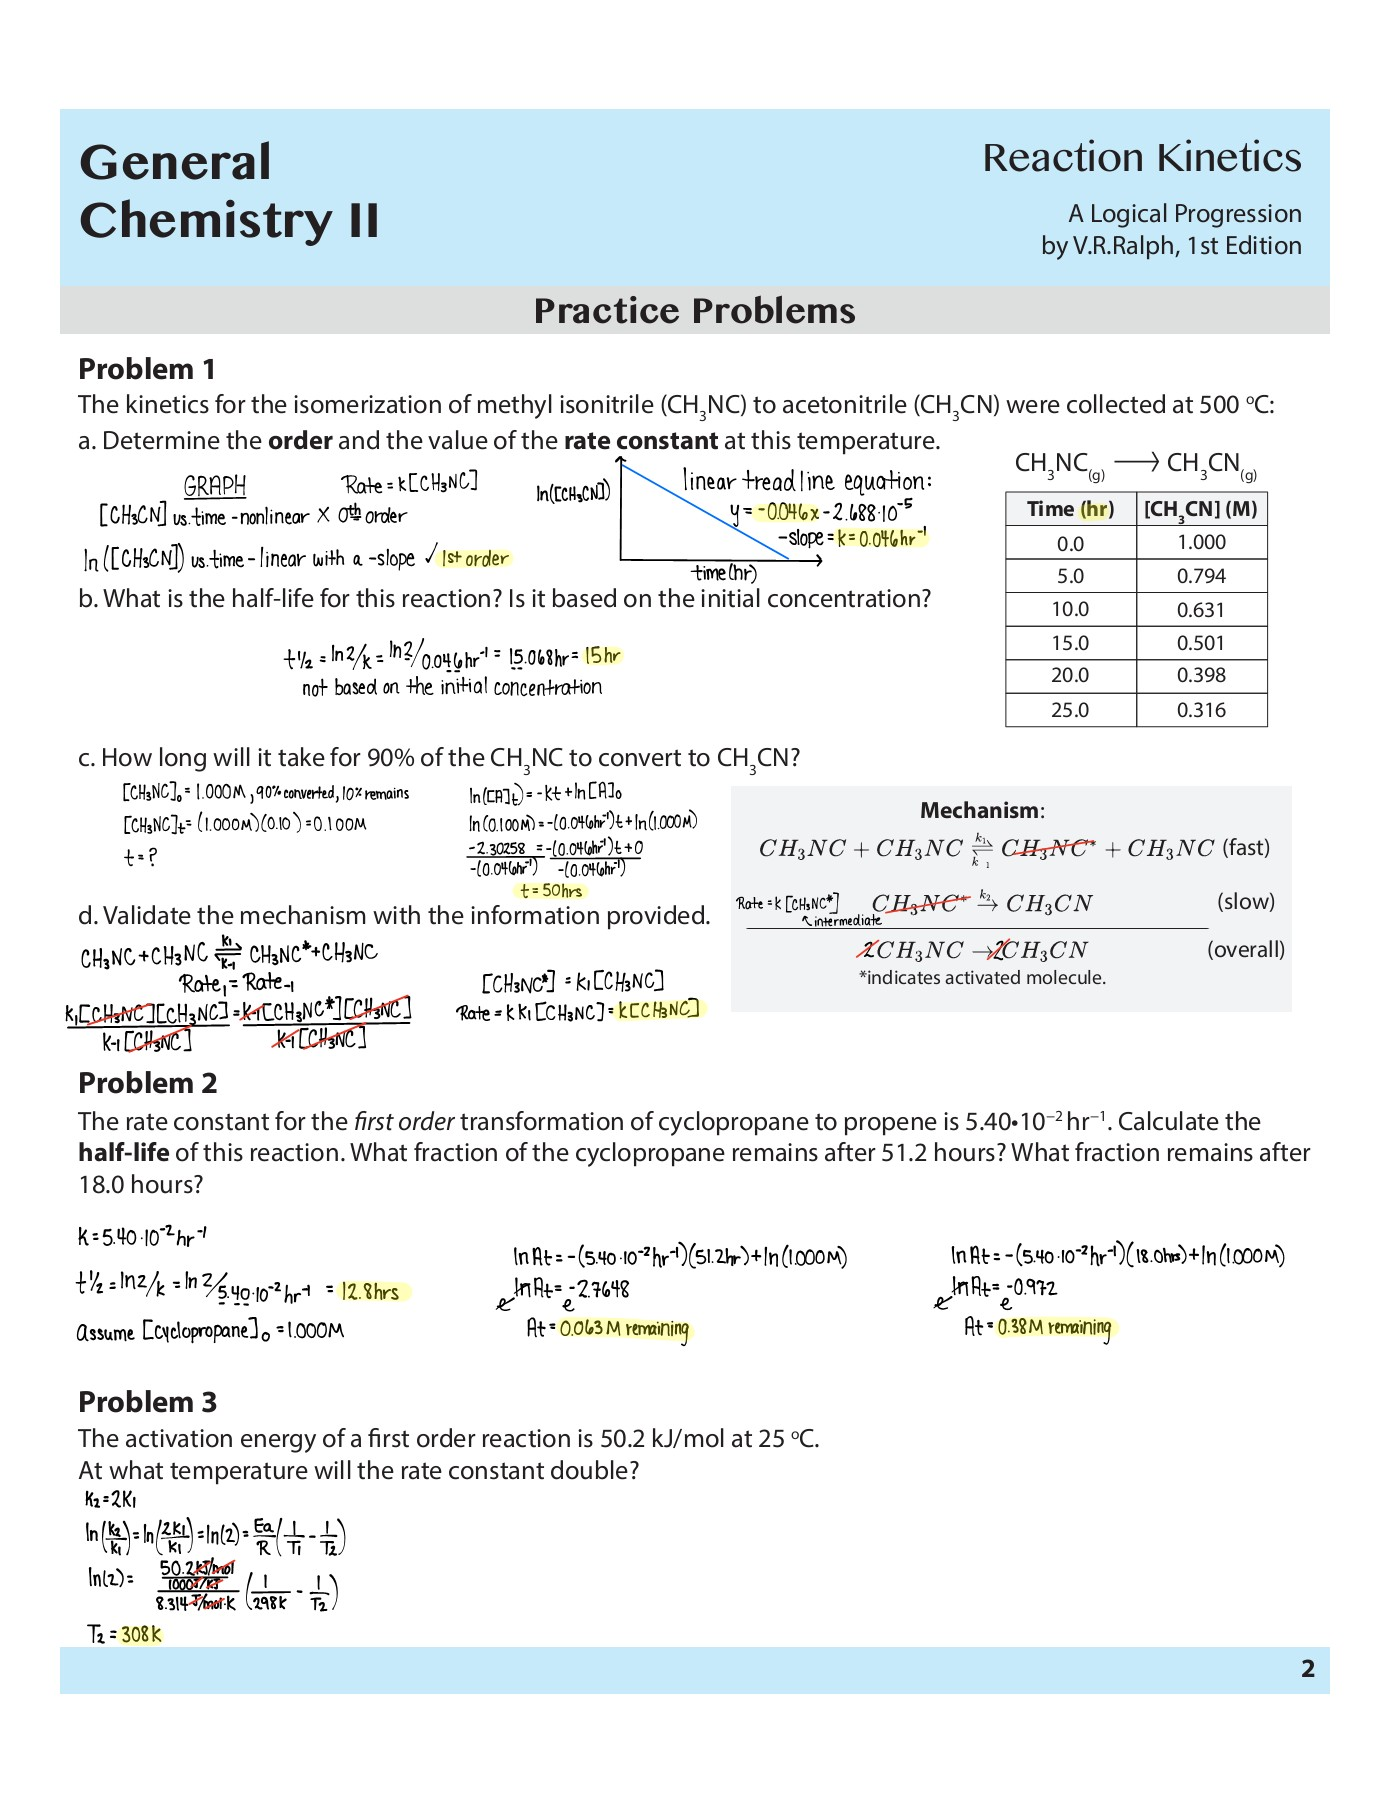 General Chemistry II - Reaction Kinetics Worksheet and Answer Key